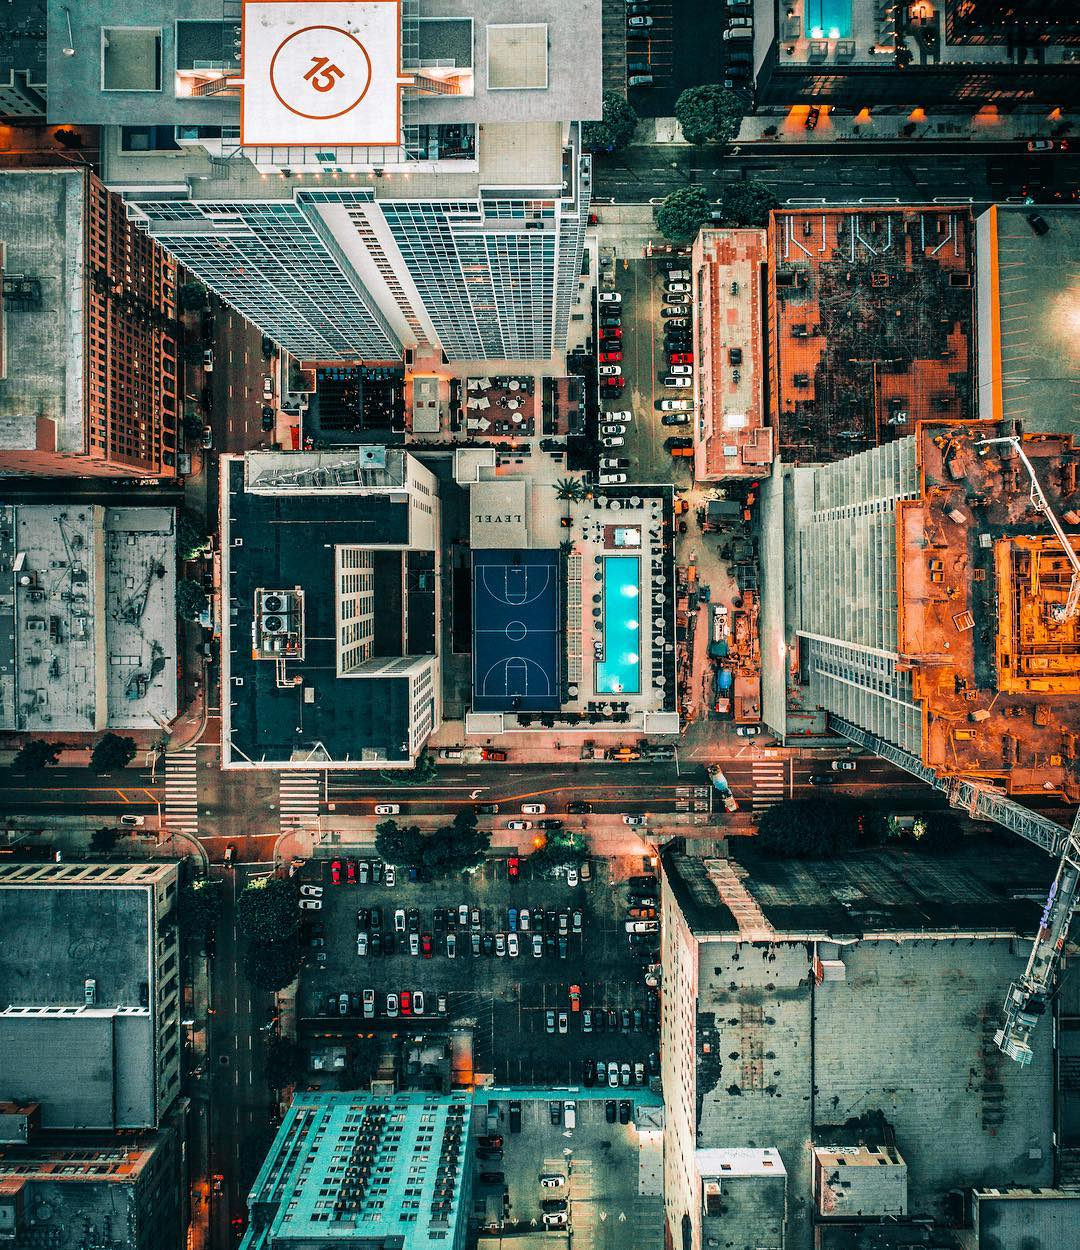 Los Angeles From Above: Vibrant Aerial Shots by ArtbyArtLA